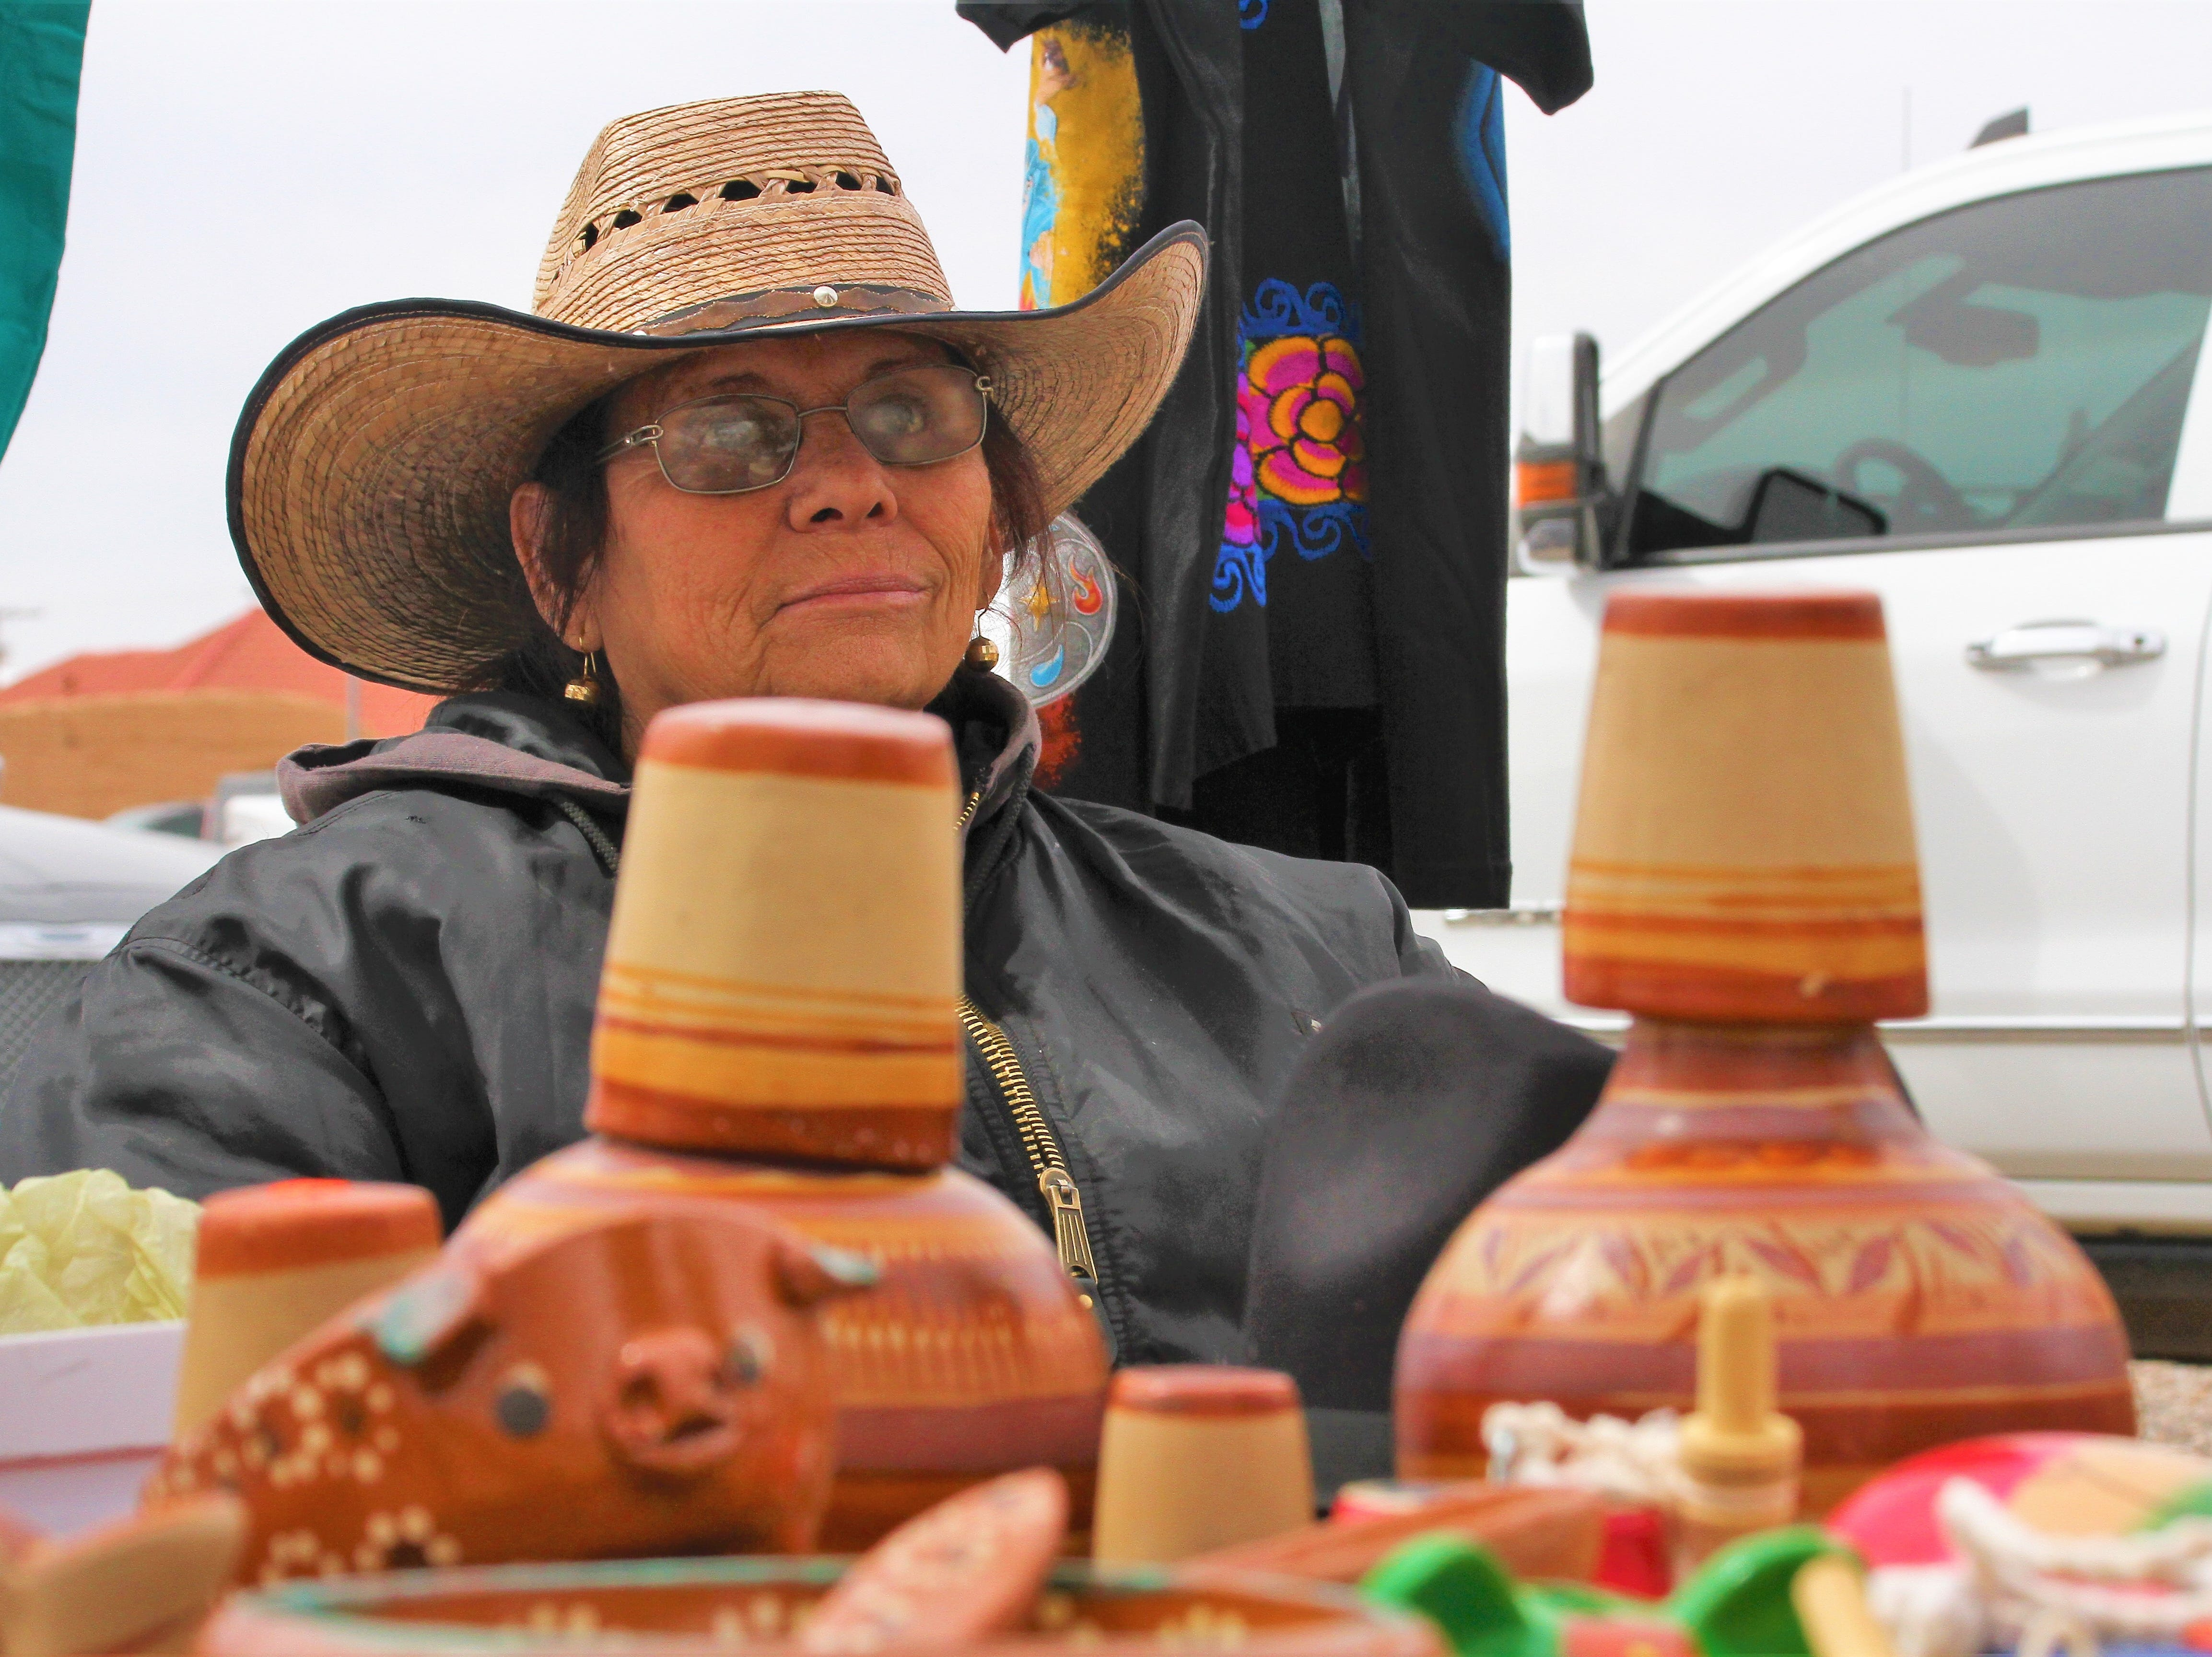 Silvia Regalado, of El Paso, Texas, was one of 19 vendors at the Binational Cavalry celebration. Regalado offered Mexican craftmanship items such as clay pots.